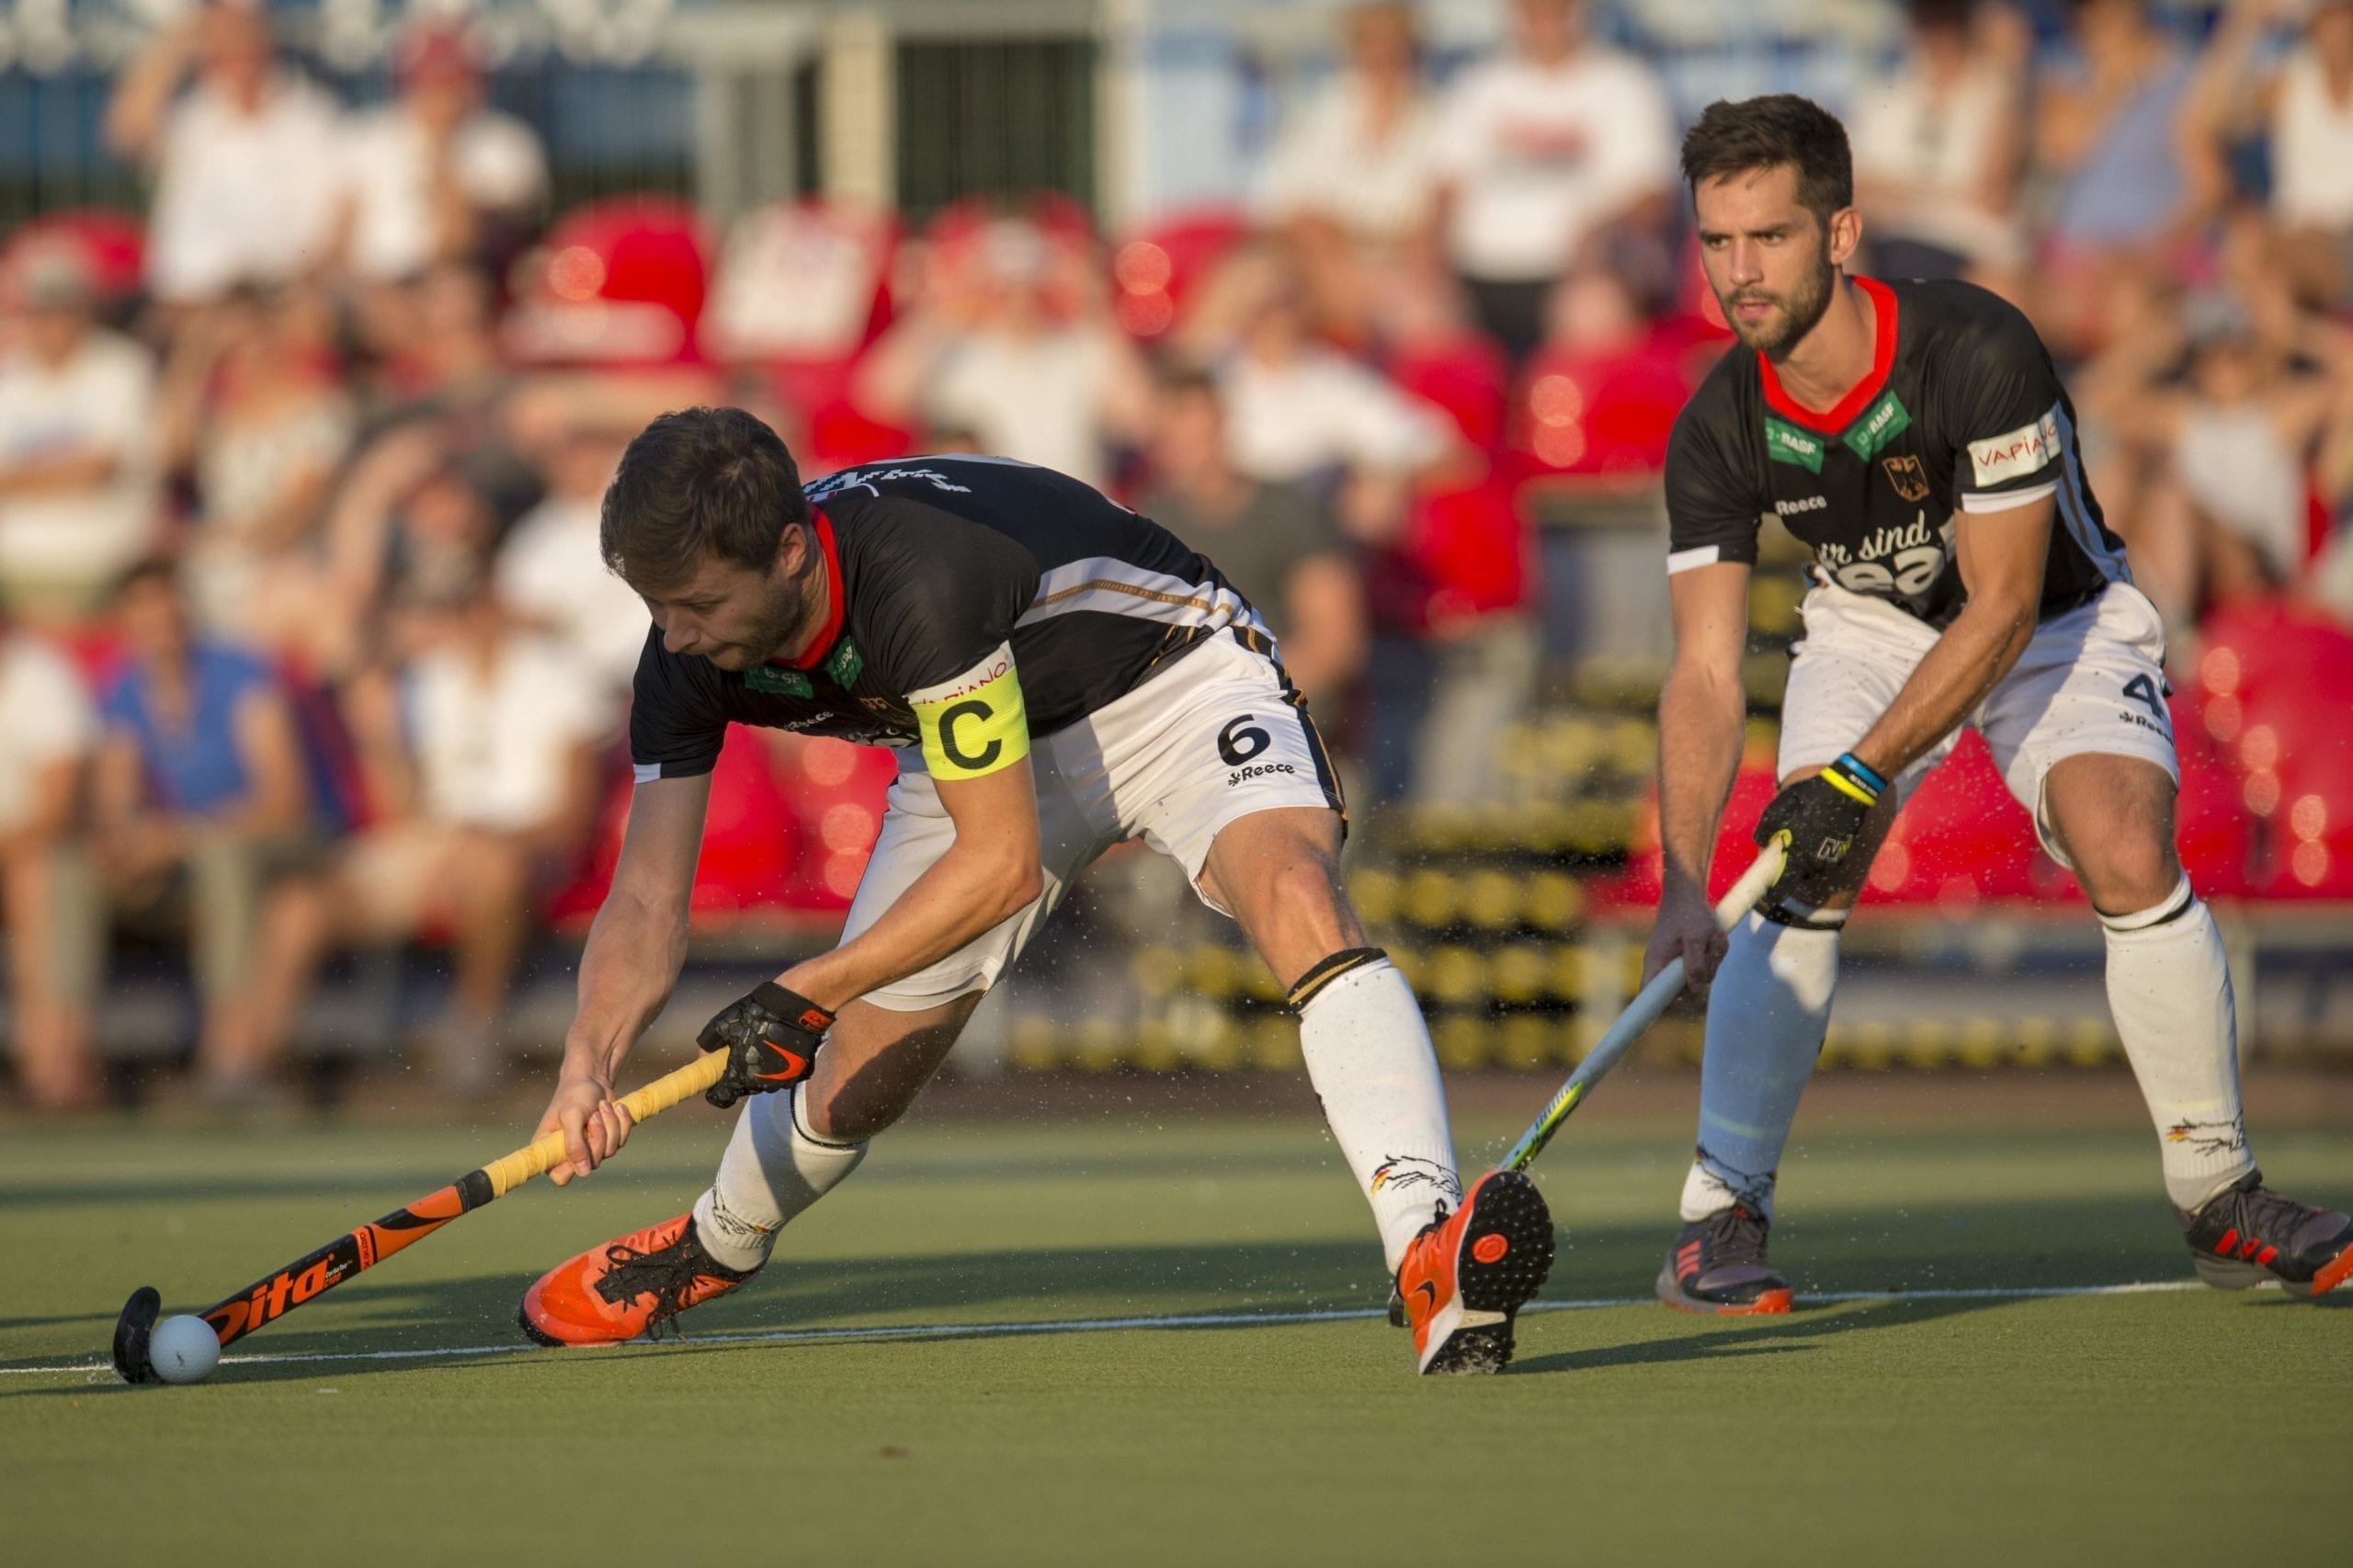 Hockey-FIH-4-Nations-Men-Germany-Ireland-20180727-0739x-scaled